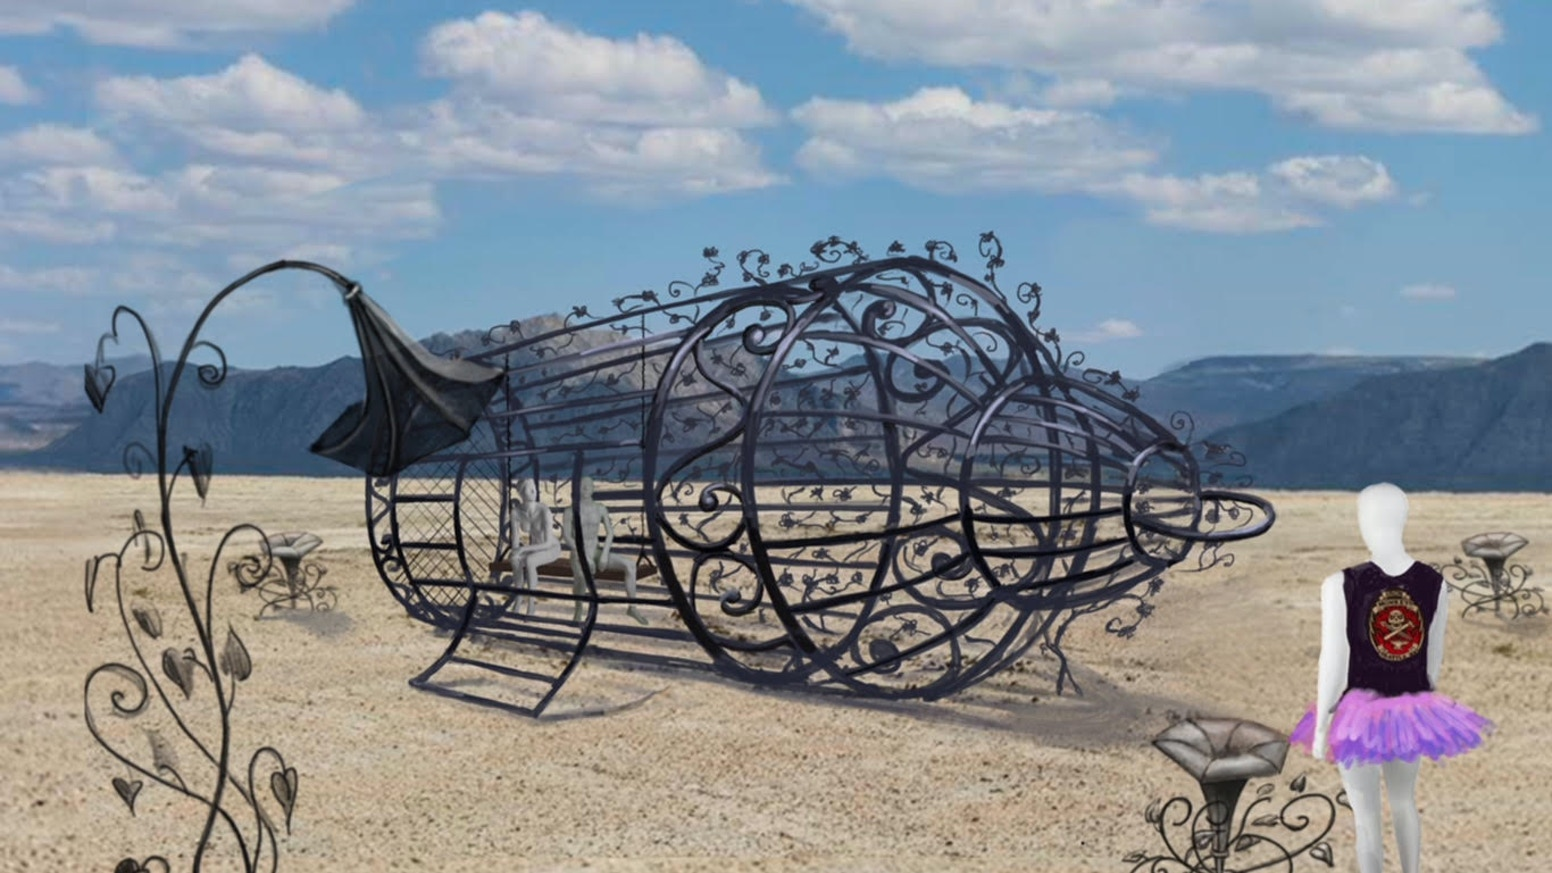 Over Grown A Sculpture For Burning Man 2018 By Iron